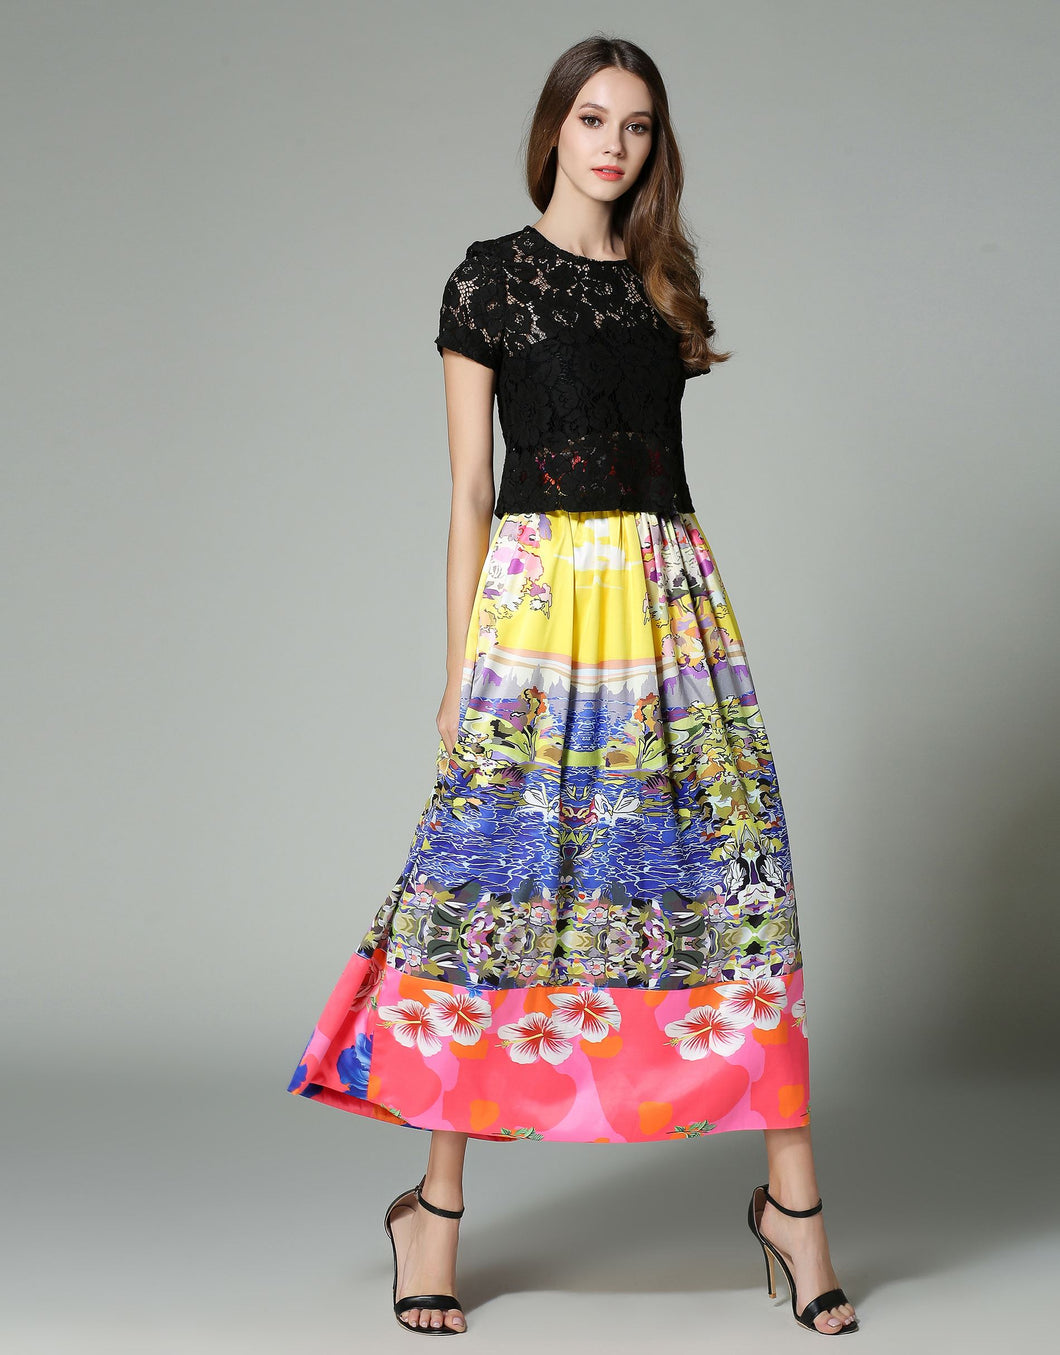 Comino Couture Fruit Salad Black Lace Top & Maxi Skirt * WAS £135*